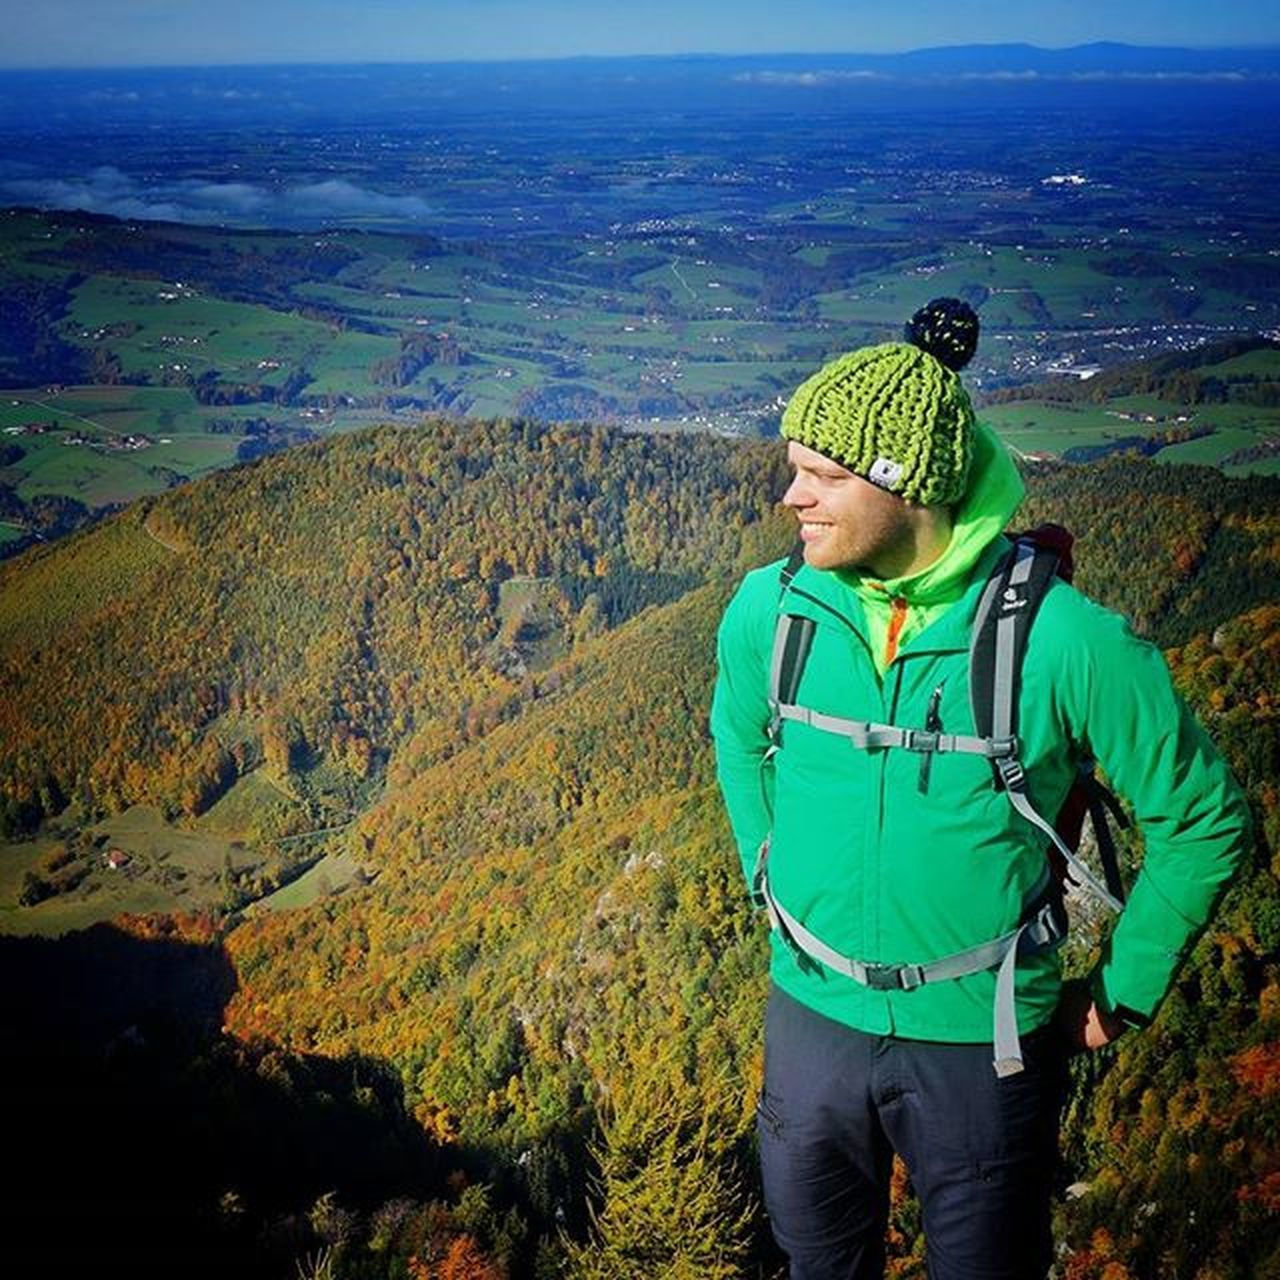 on top of the gaisberg ! 🌄🍁🍃🍂🌿 @deuter Deuter Exploremore Wanderlust Letsgosomewhere Soultravel Culture Explore Adventure Hike TravelNoire Austria Trail Trailrunning Seesomeworld Welltravelled Travel Doyoutravel CreateExplore Travelclub Love Beautiful Exploring Fashion Picoftheday Nature lifestyle traveltheworld autumn natgeoadventurre natgeo